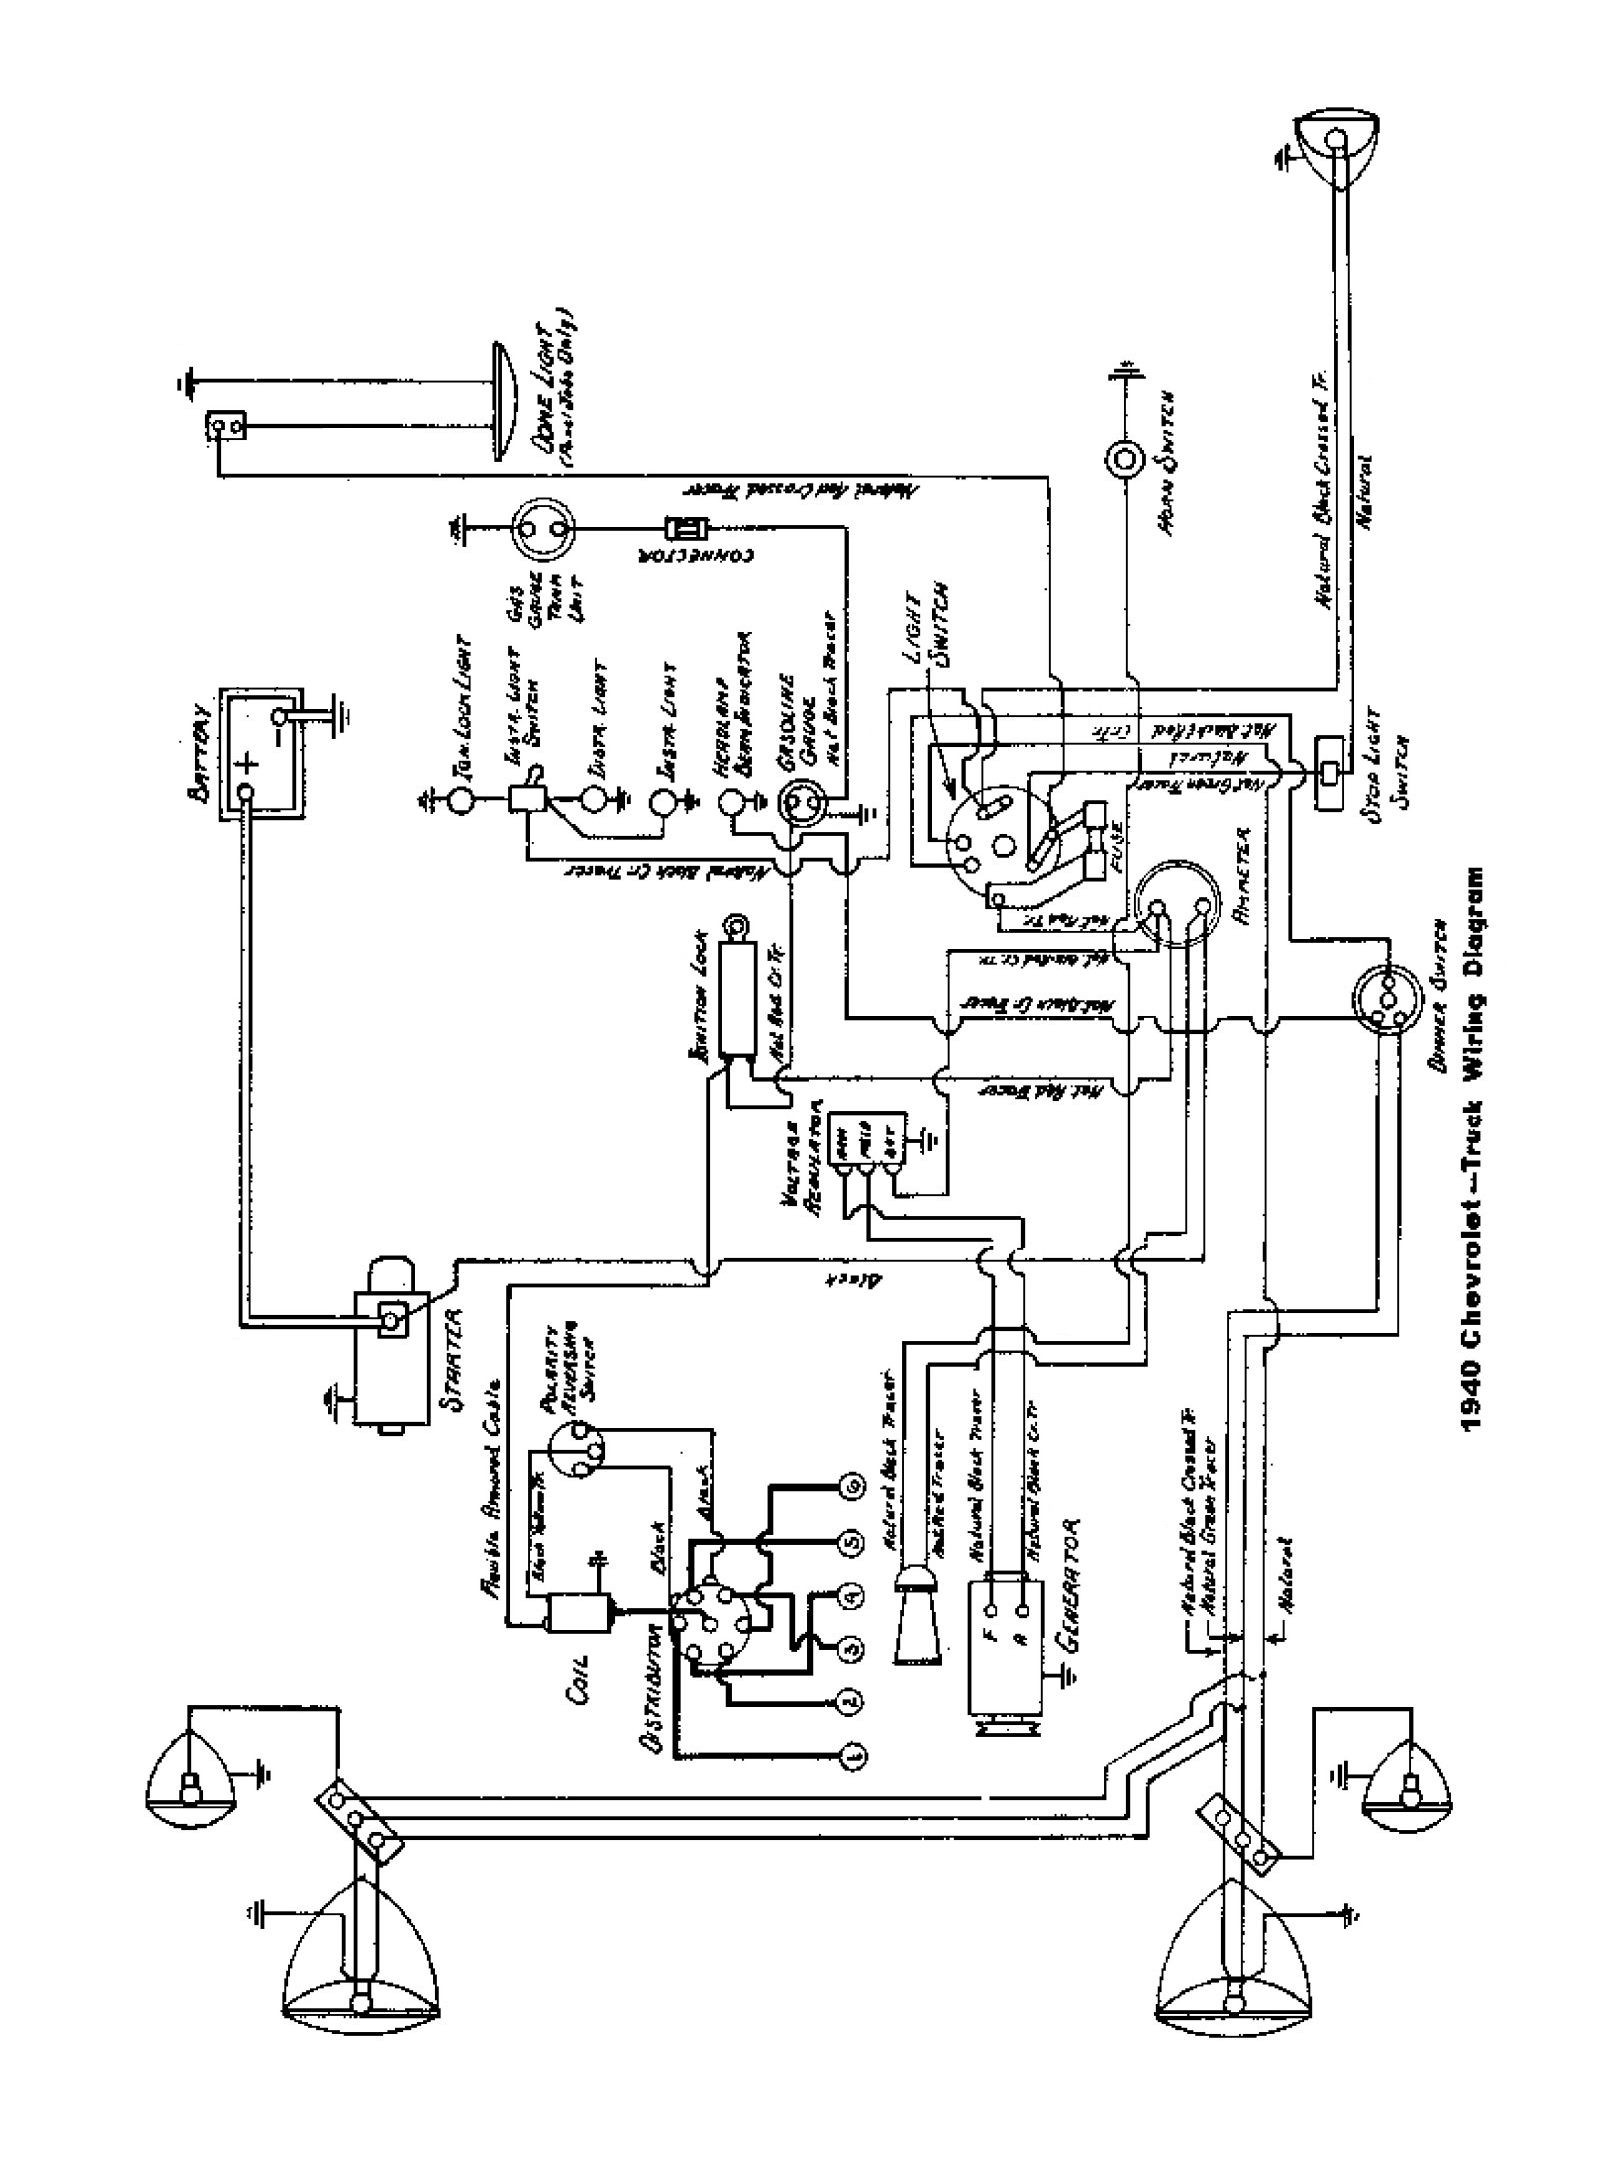 Chevy Silverado Wiring Diagram Chevy Wiring Diagrams Of Chevy Silverado Wiring Diagram